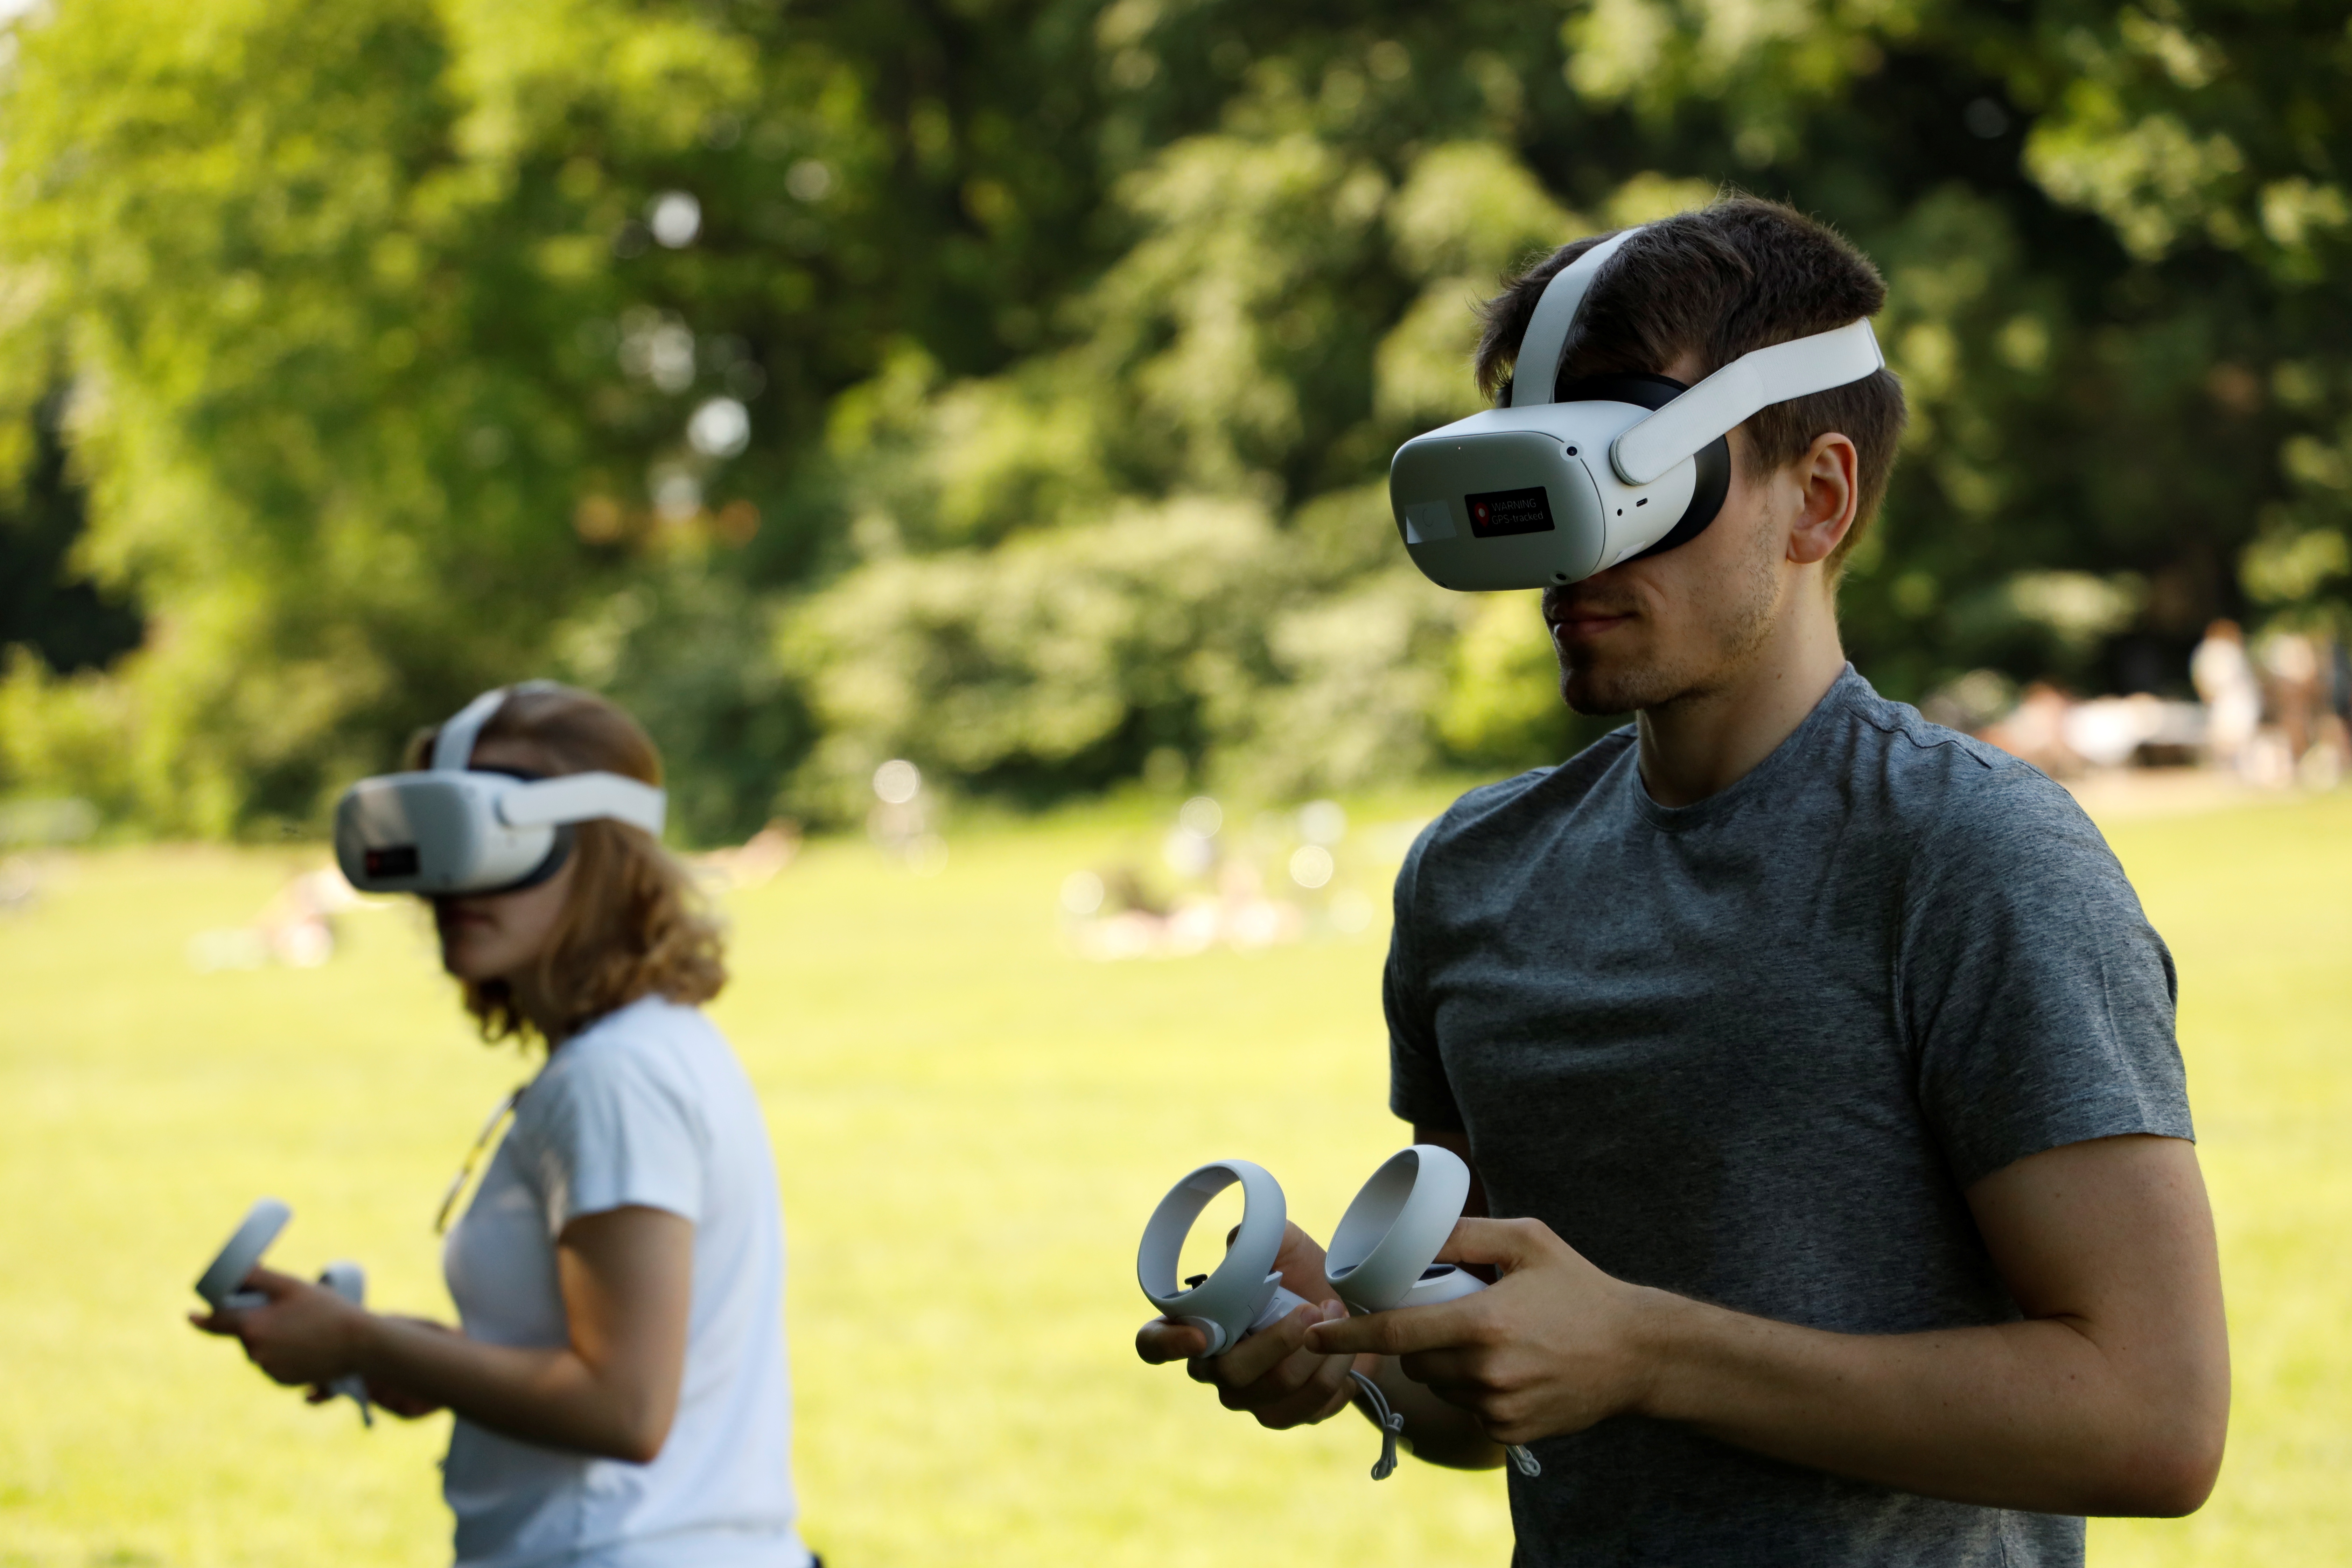 Participants Adam and Rebecca take part in an experiment, where researchers try to use virtual reality goggles to teach people about how virus infections spread, conducted in a park, amid the coronavirus disease (COVID-19) pandemic, in Copenhagen, Denmark, June 6, 2021. Picture taken June 6, 2021. REUTERS/Tim Barsoe